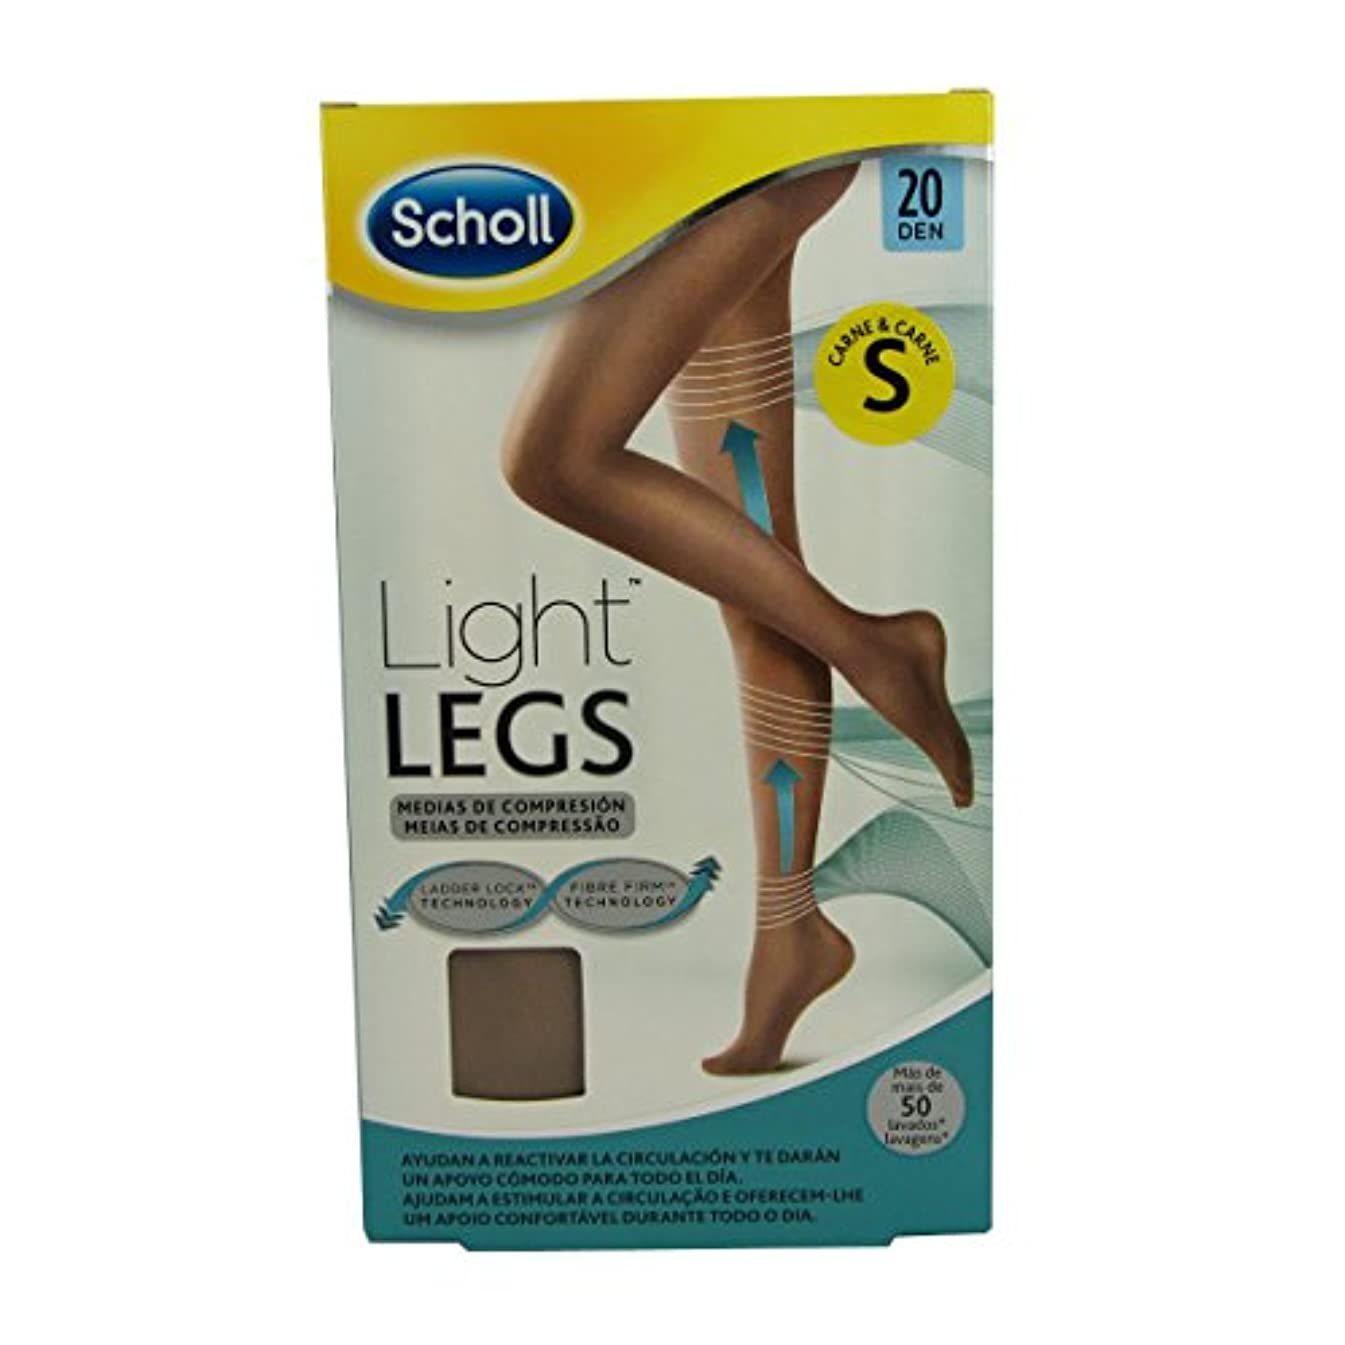 パンサー報奨金第二Scholl Light Legs Compression Tights 20den Skin Small [並行輸入品]